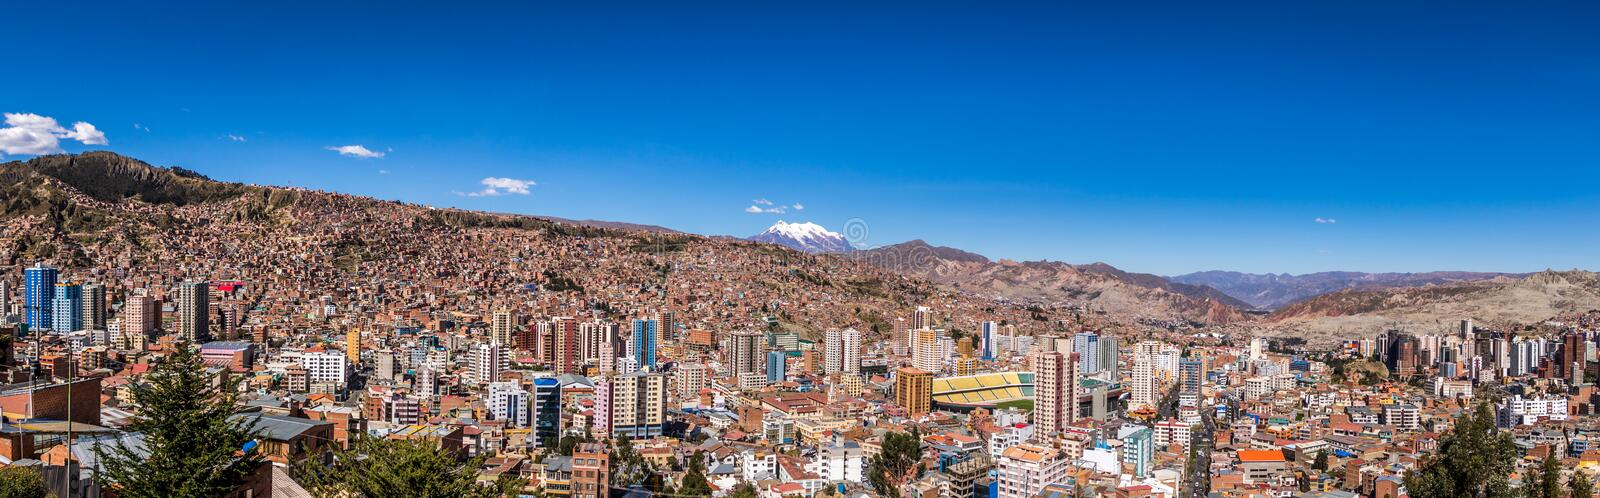 Panoramic view of La Paz with Illimani Mountain - La Paz, Bolivia royalty free stock photo